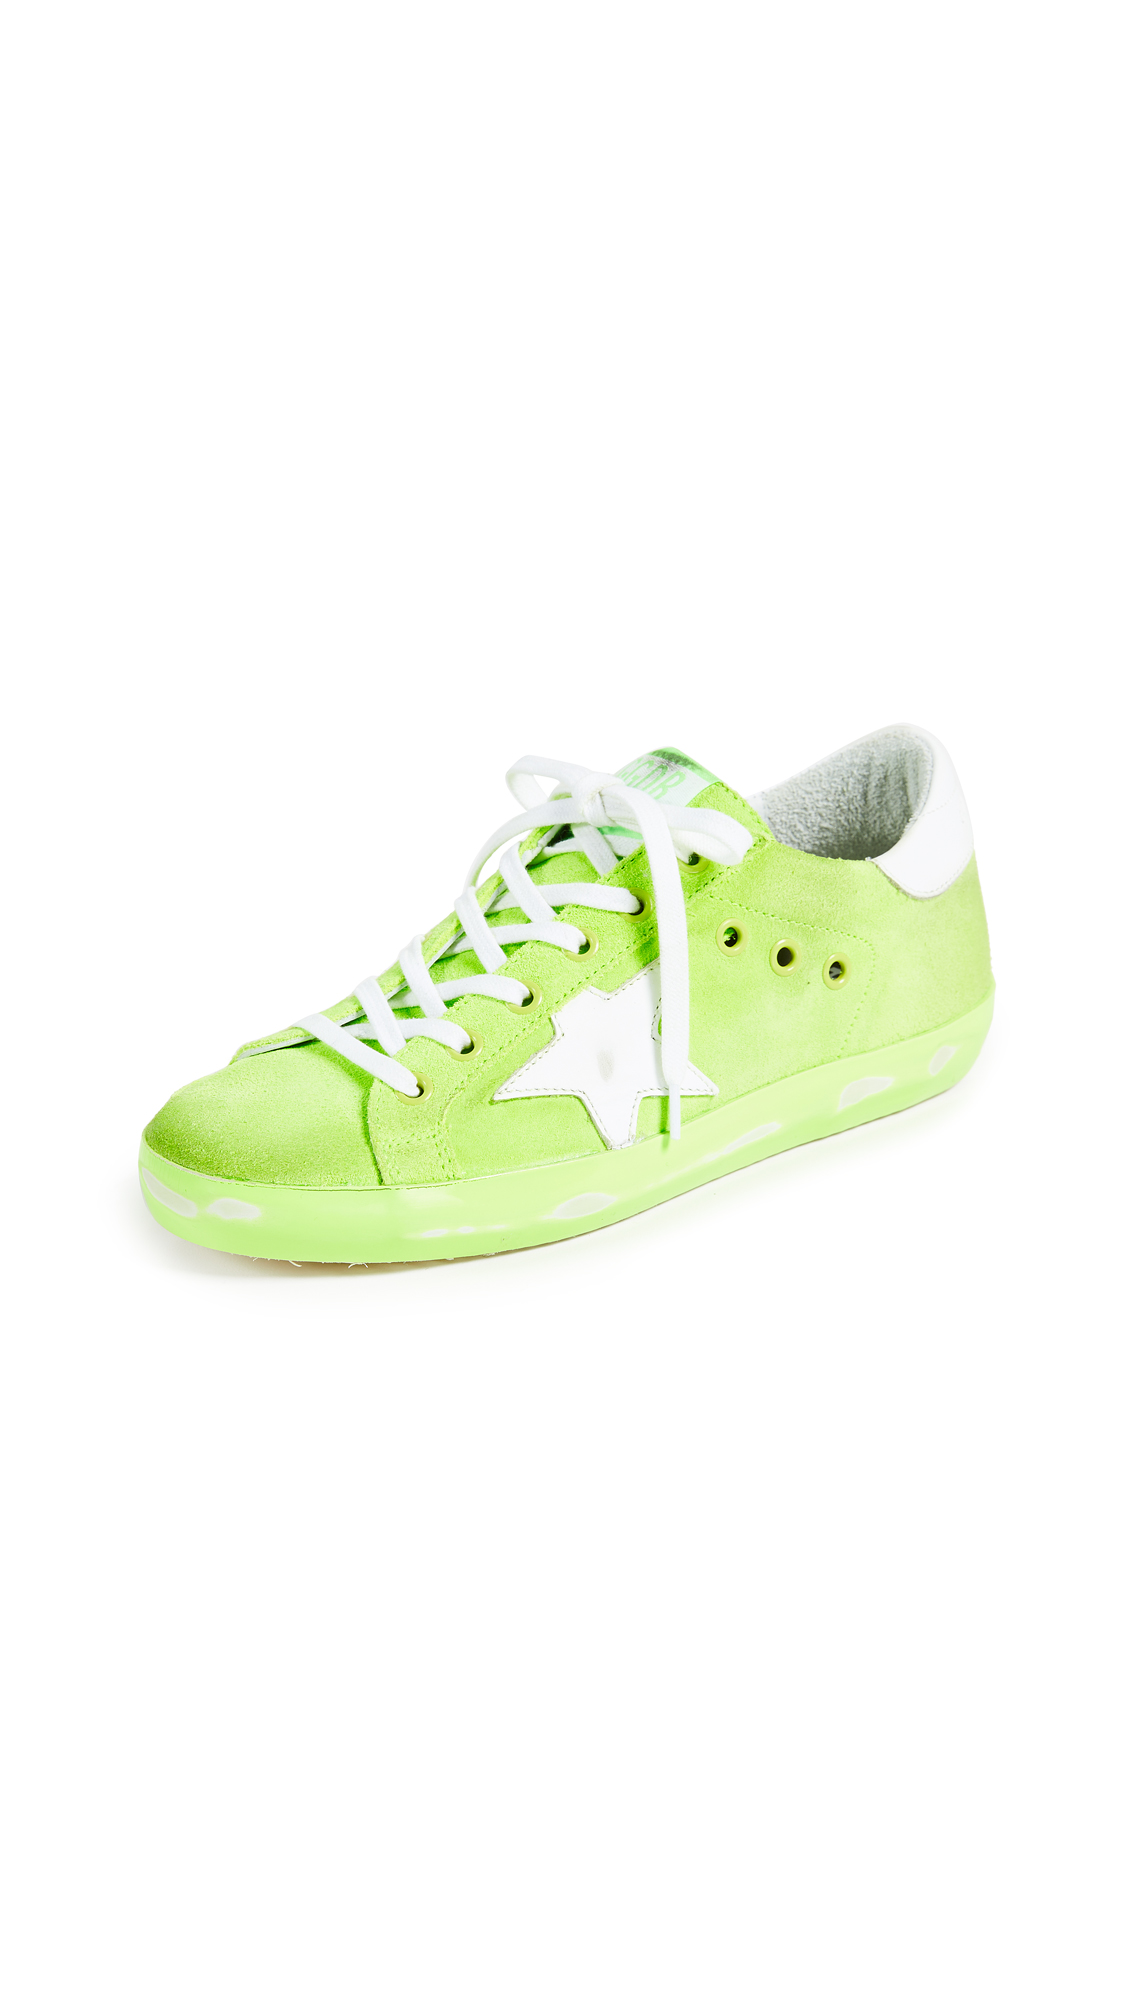 Golden Goose Superstar Sneakers - Light Green Fluo